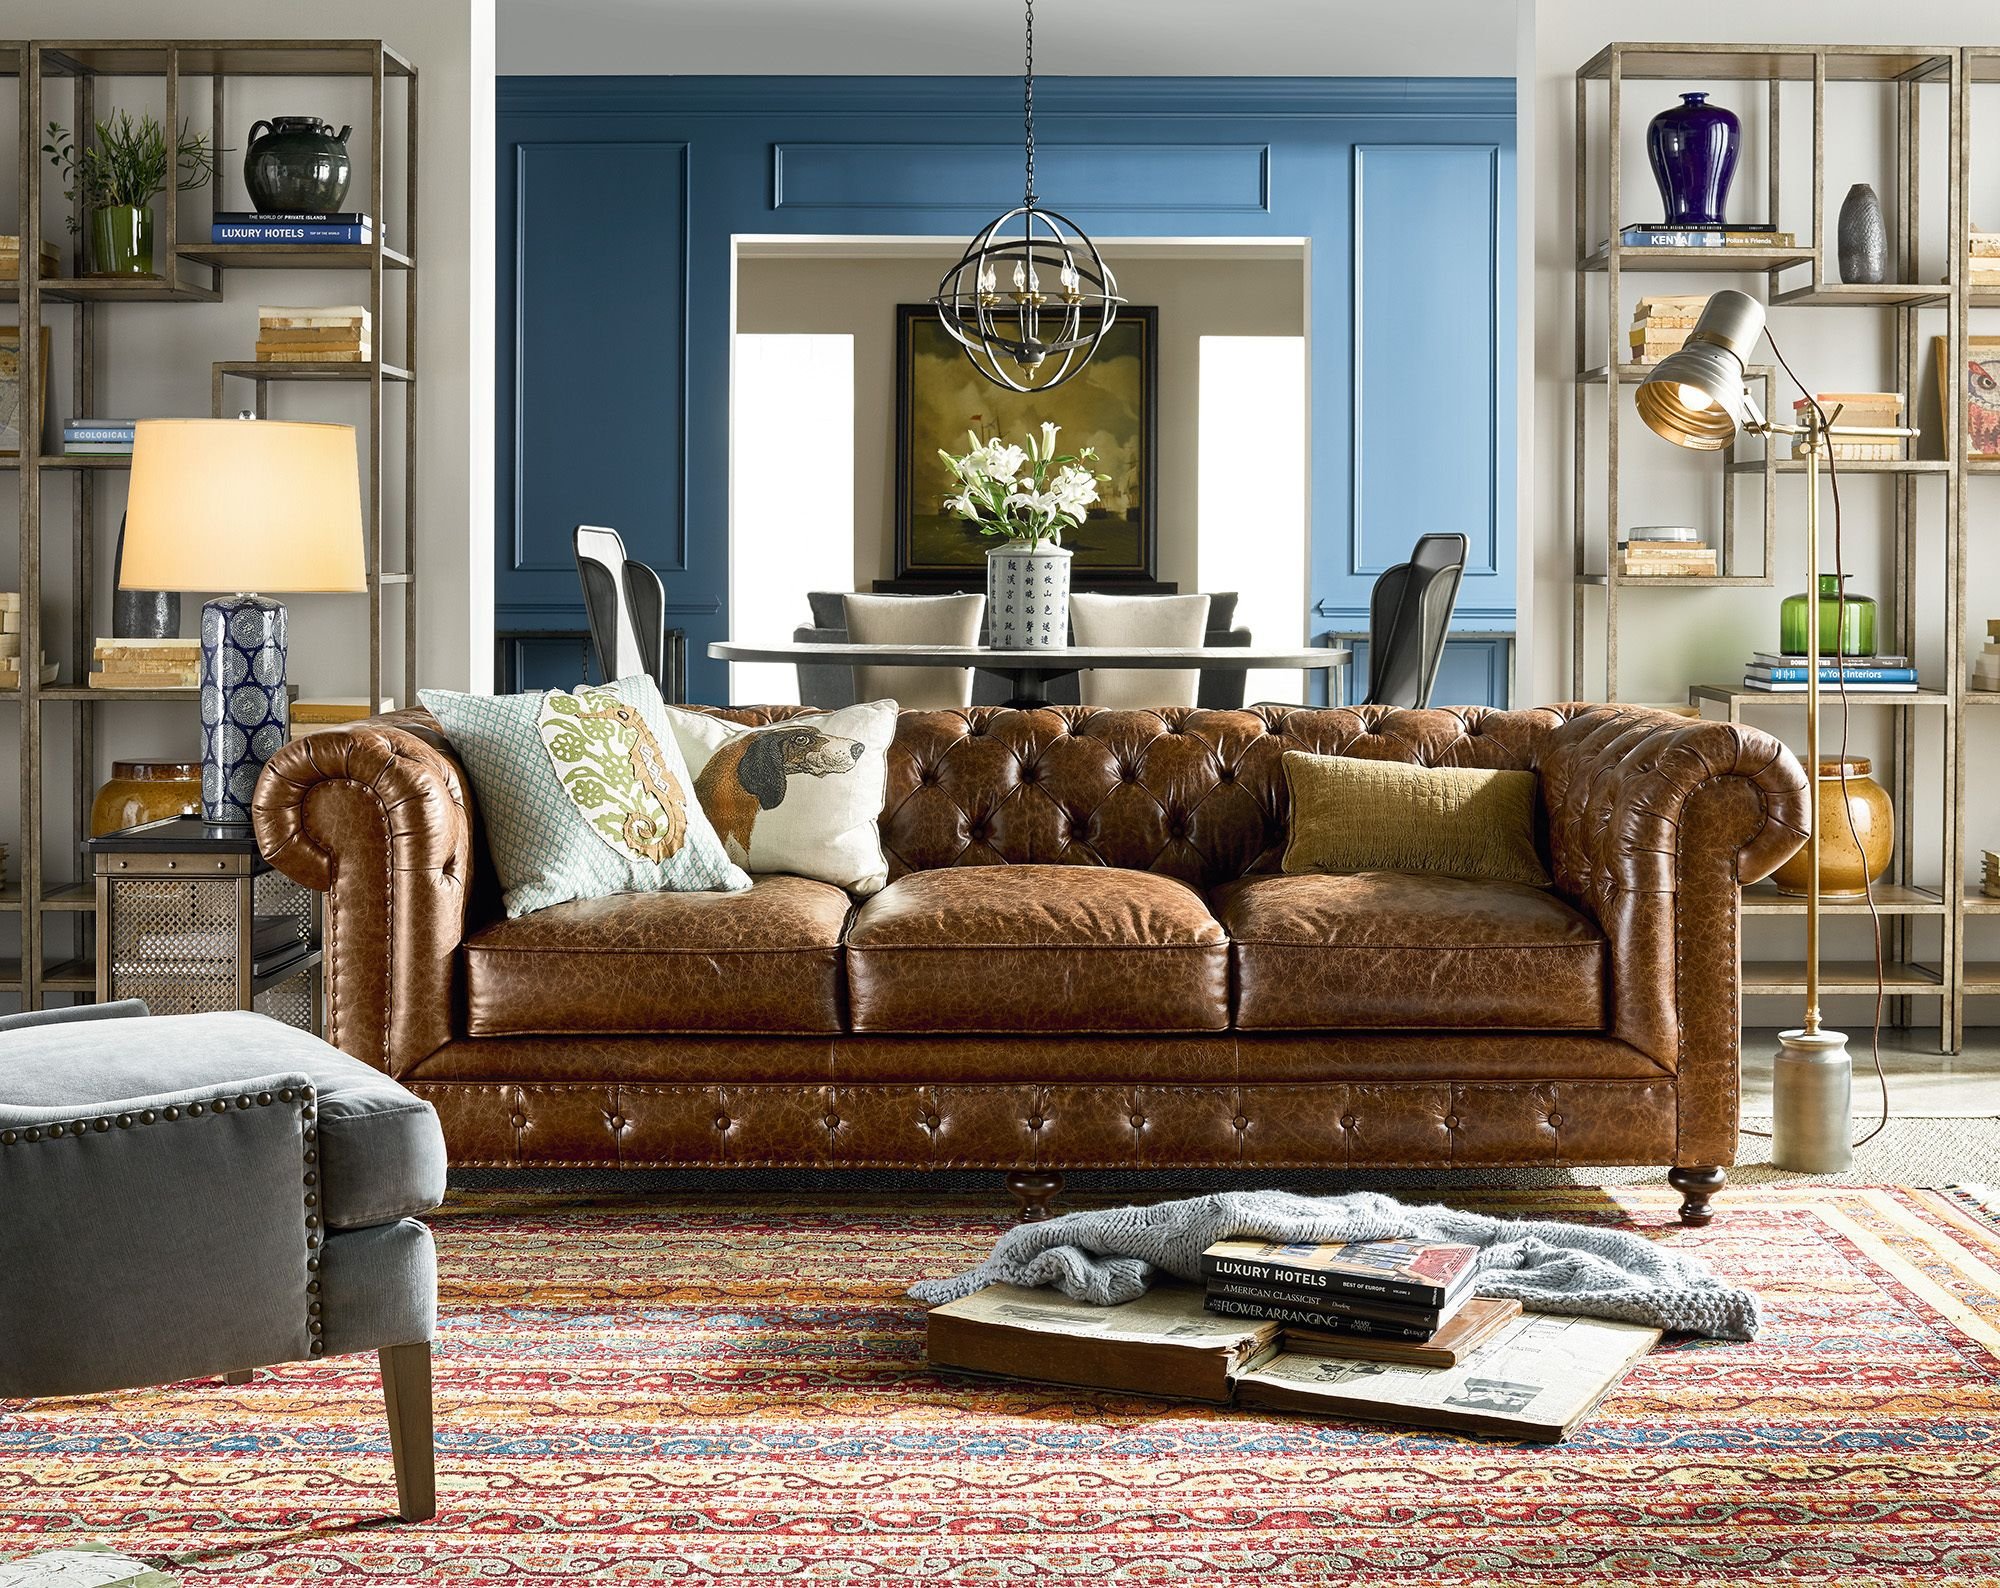 Berkeley Leather Sofa Universal Furniture Home Gallery Stores Leather Chesterfield Sofa Universal Furniture Sofa Upholstery